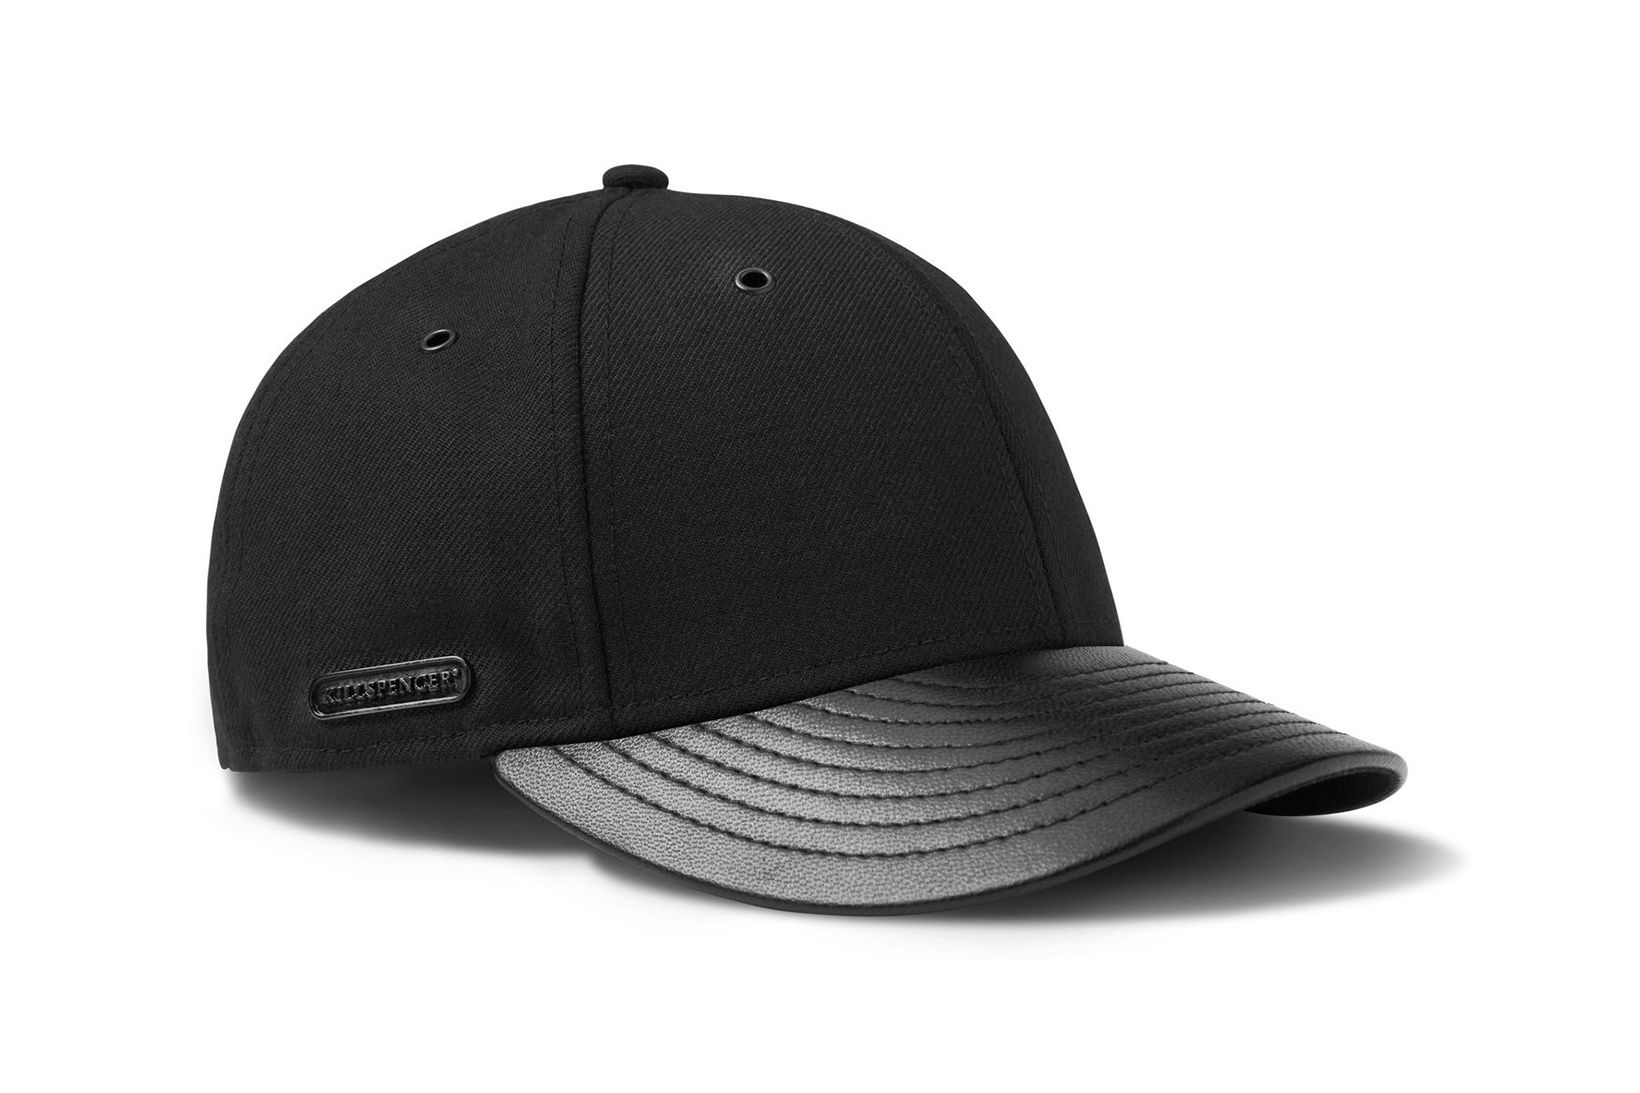 Killspencer Teams Up with New Era to Create Minimalist All-Black Cap ... 6cd8a11bba7